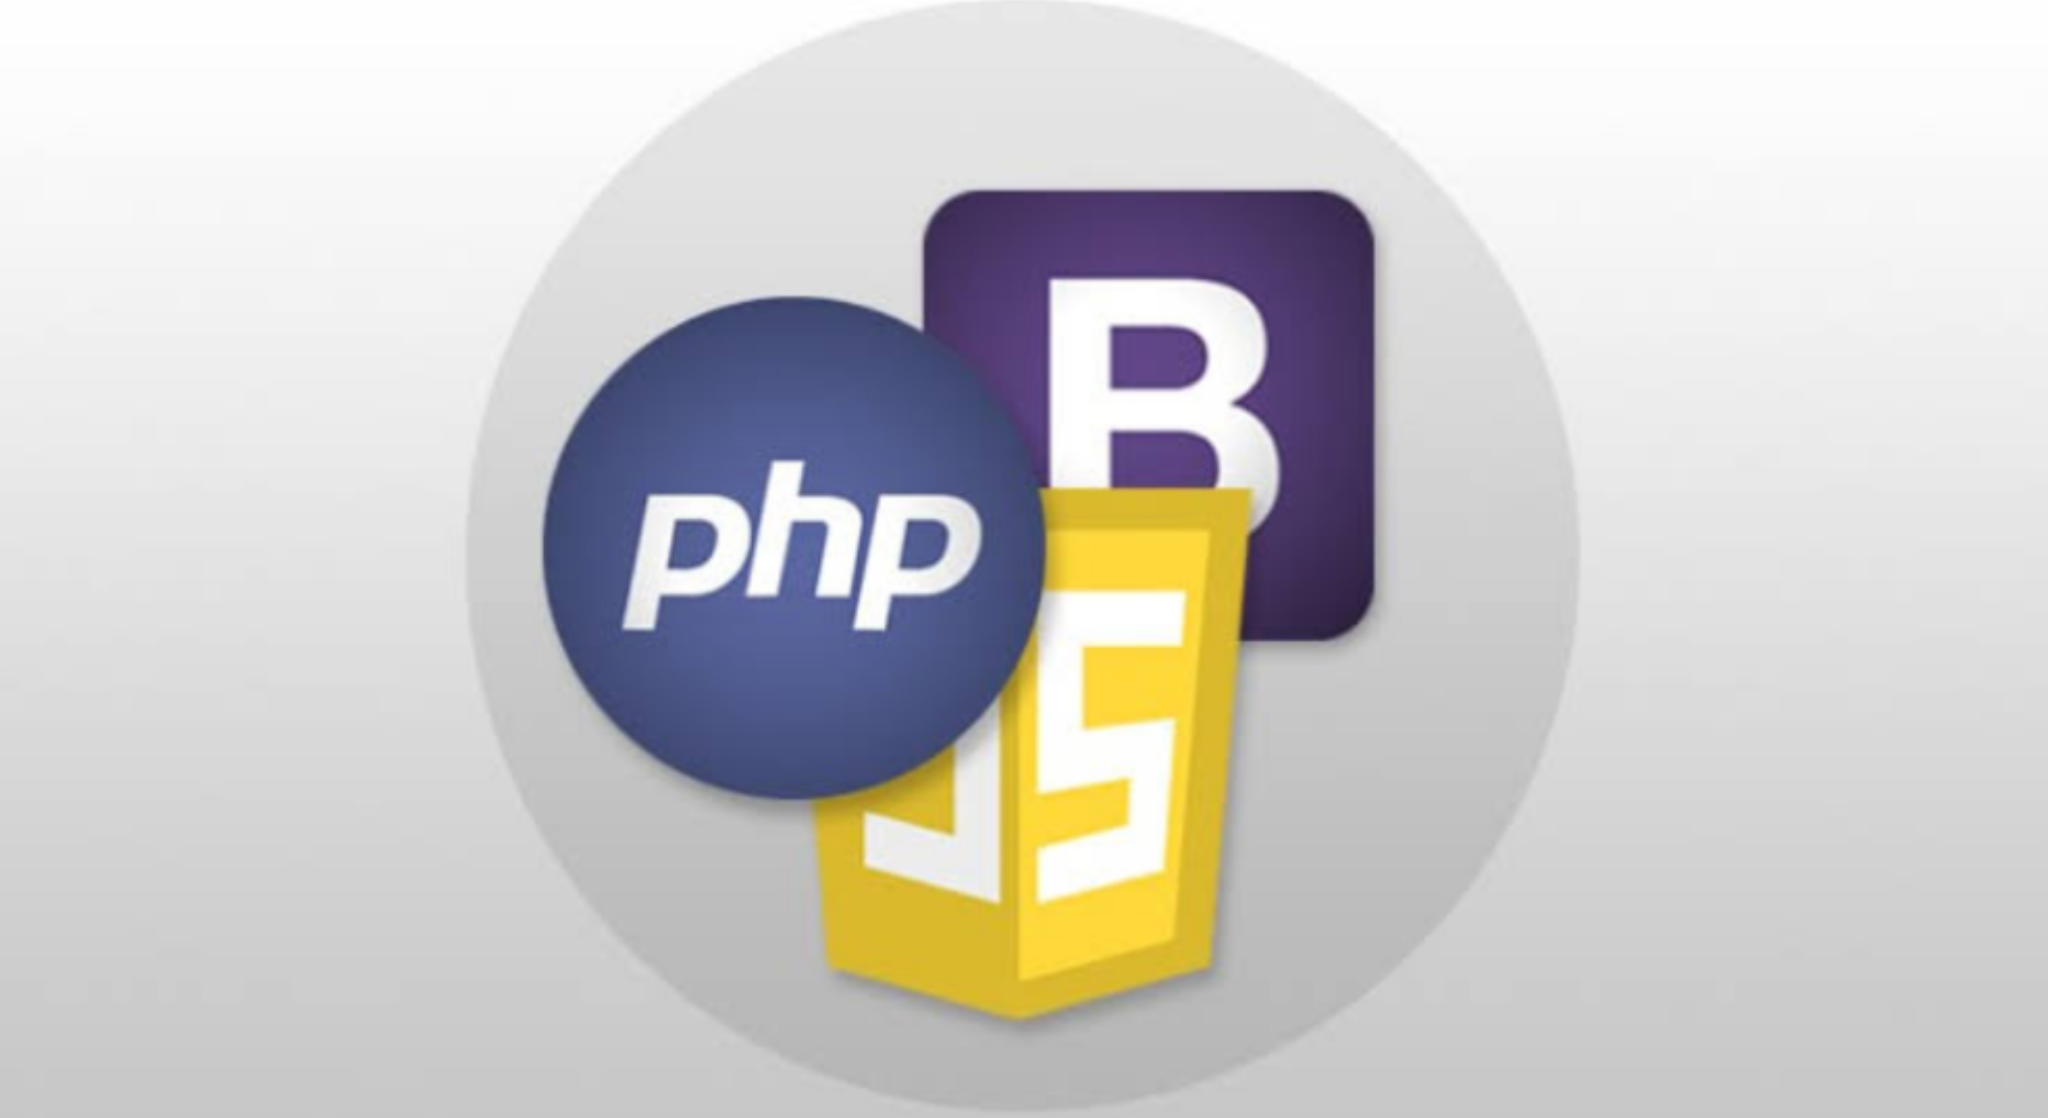 JavaScript Bootstrap PHP Certification for Beginners